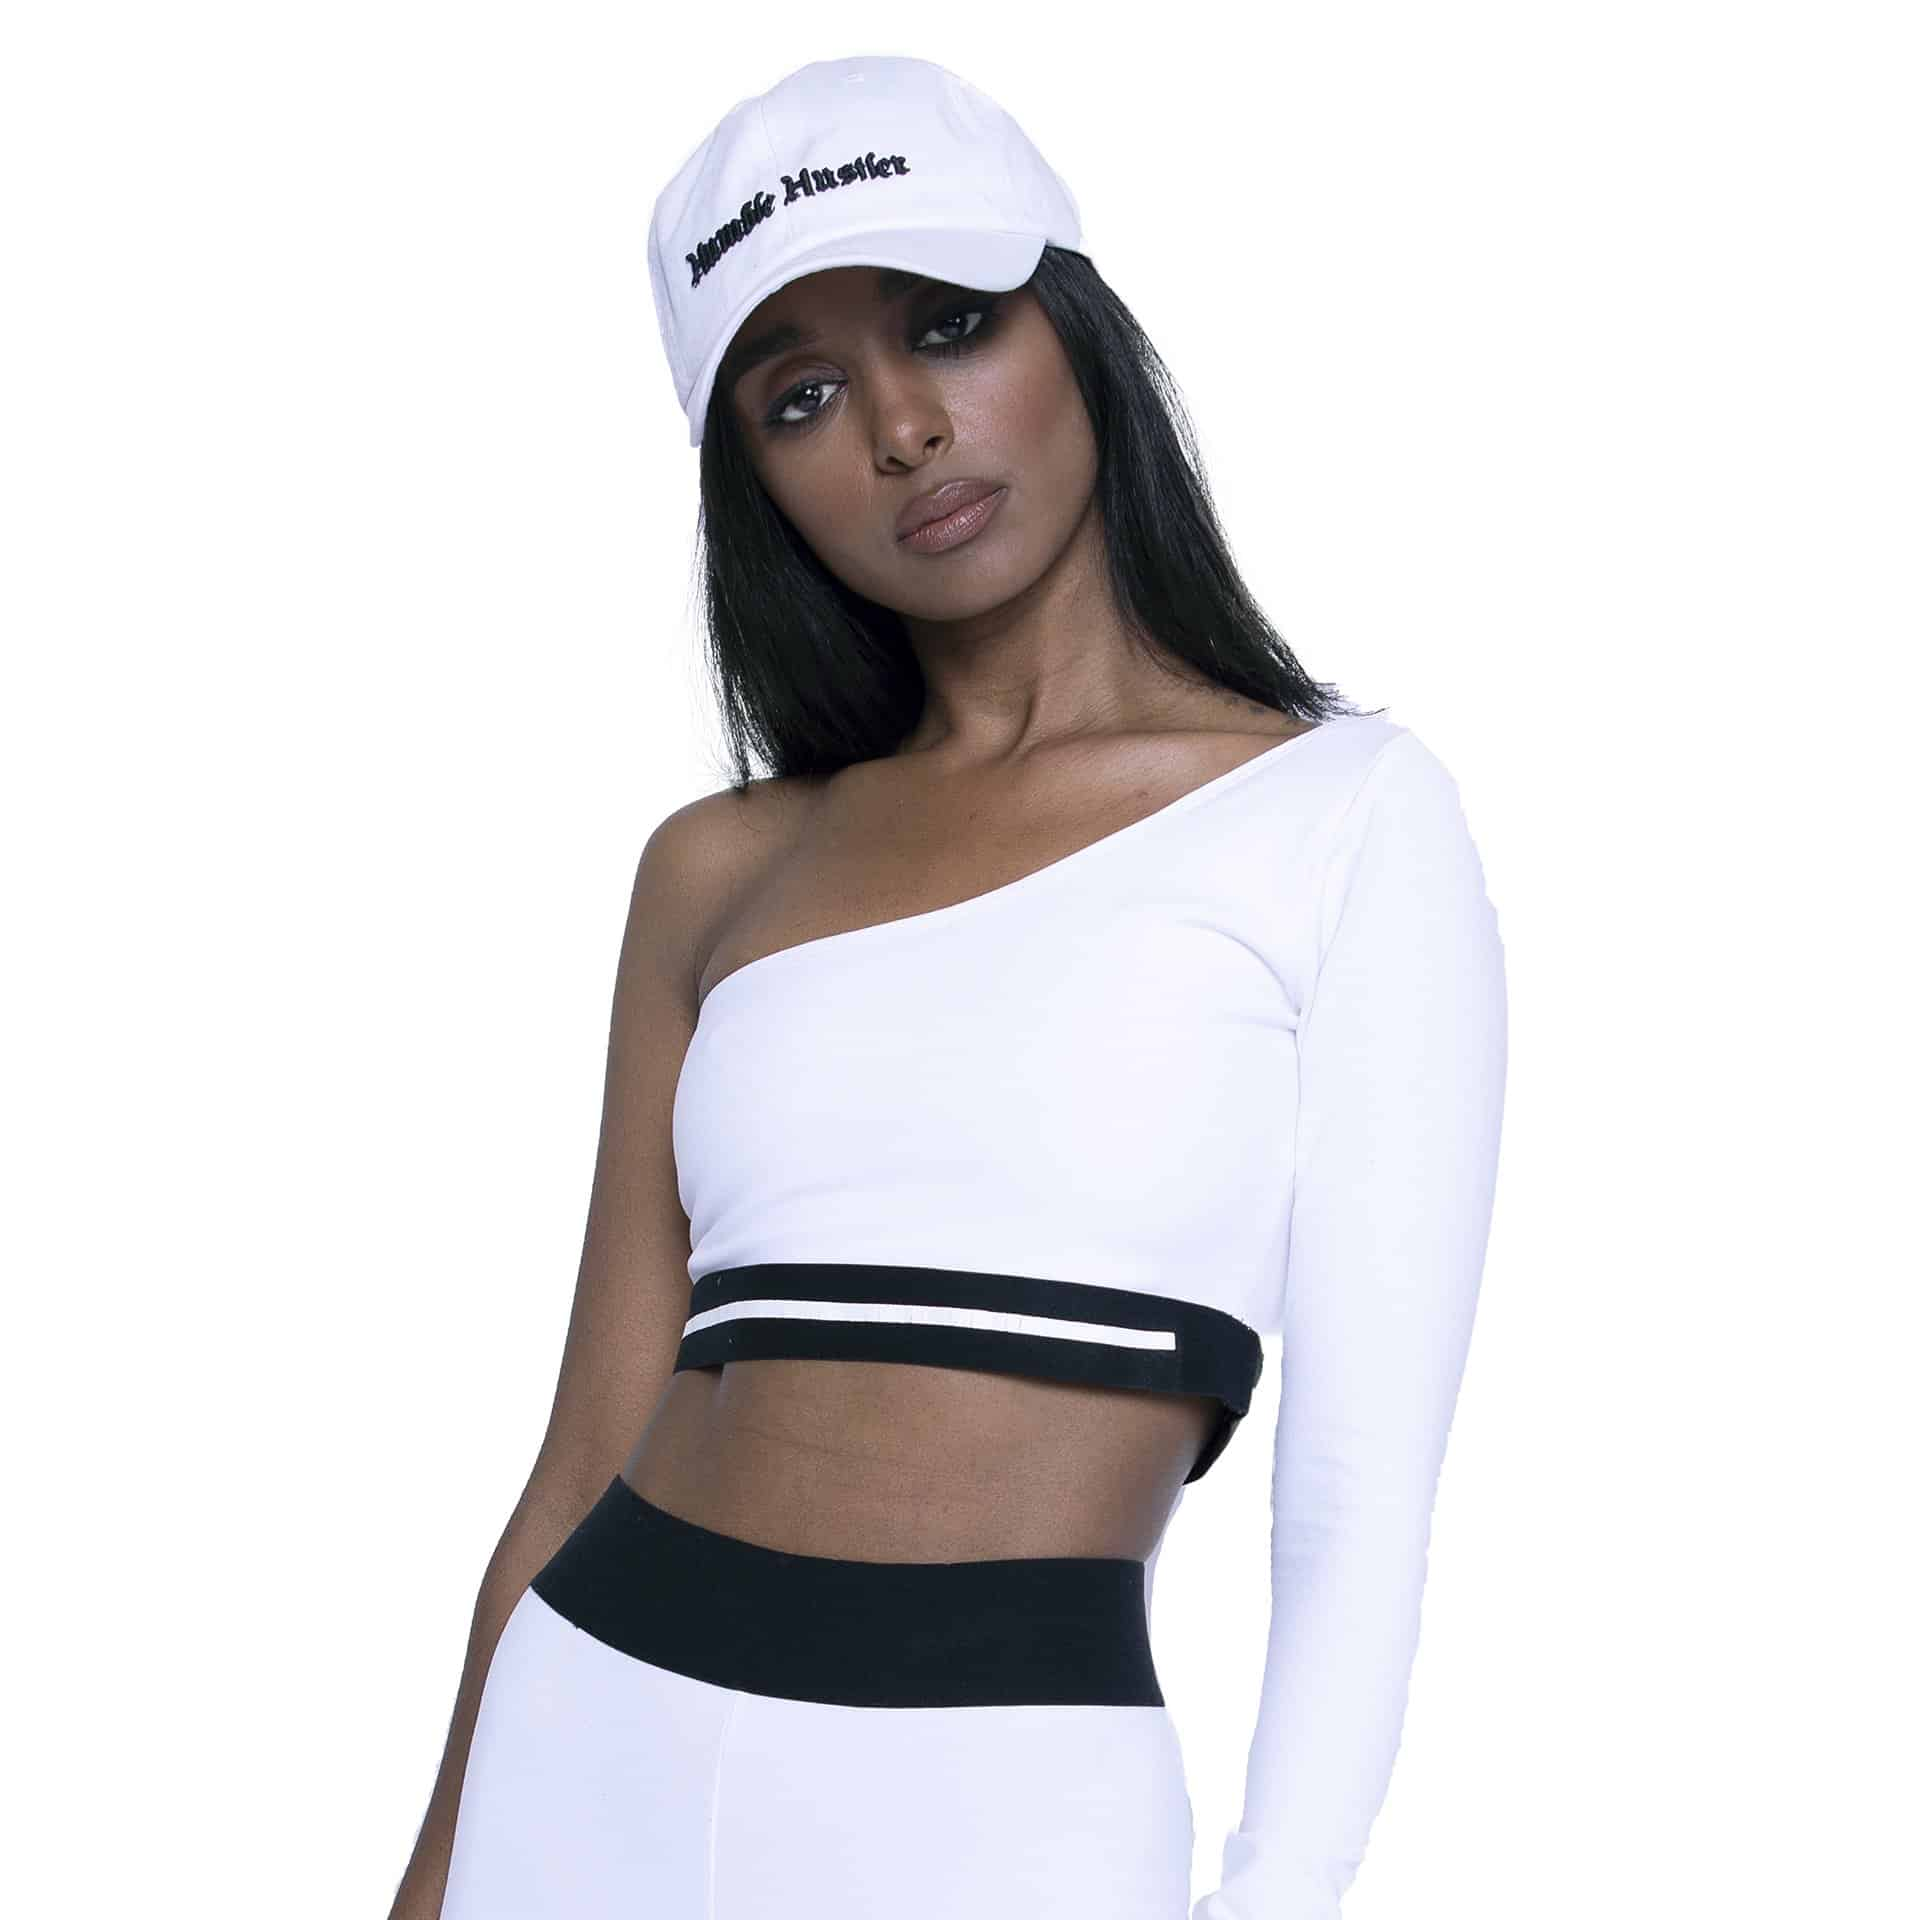 HUMBL – Cropped Top (Active Wear)